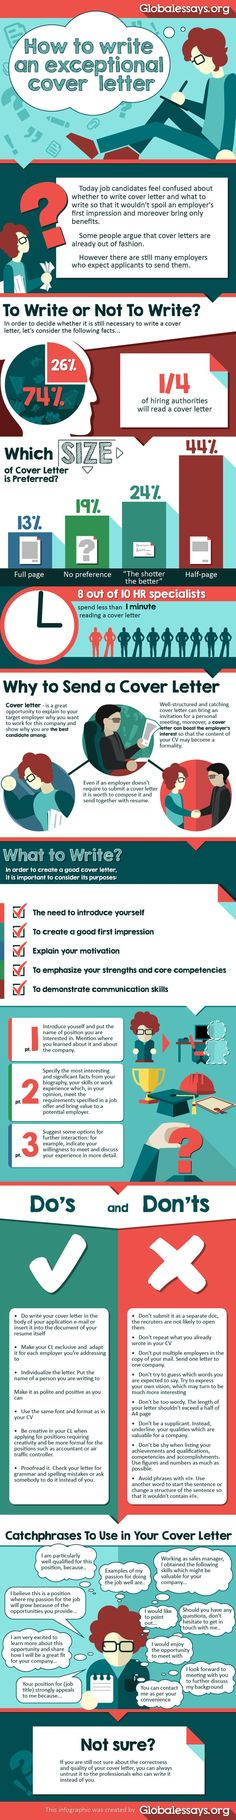 Resume Cheat Sheet 222 Action verbs to use in your new resume - how do i write resume